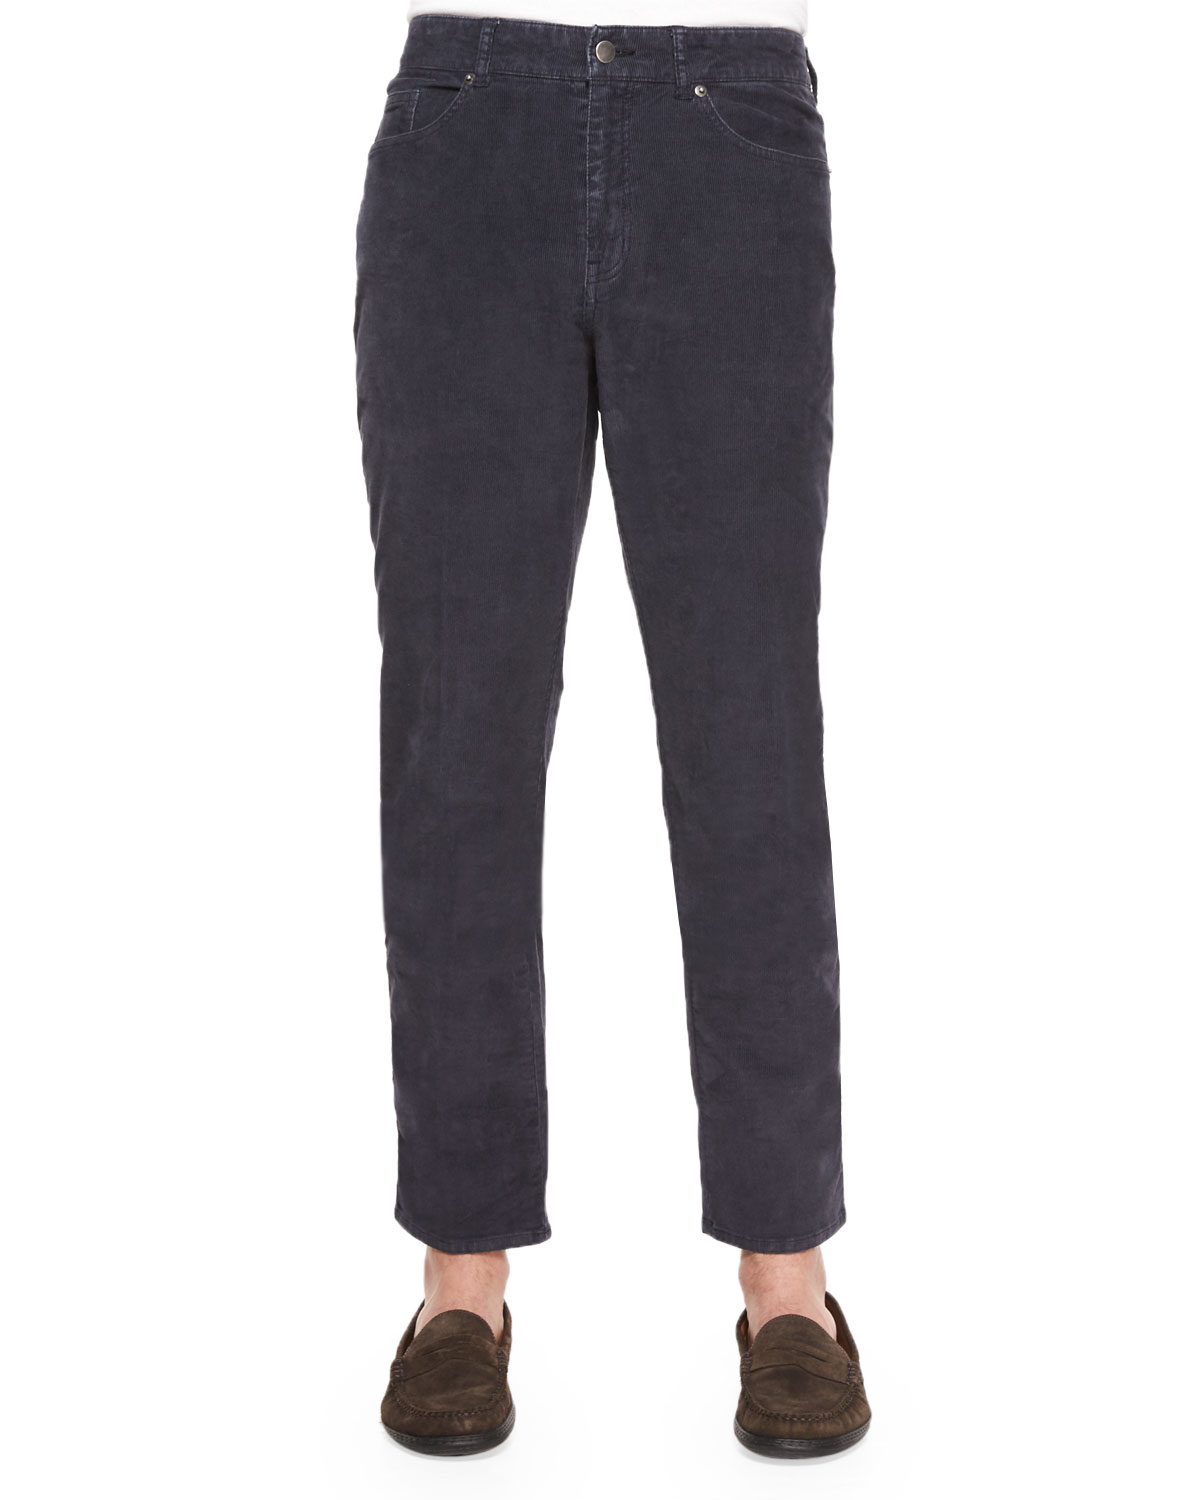 Shop for men's Casual Pants online at deletzloads.tk Browse the latest Pants styles for men from Jos. A Bank. FREE shipping on orders over $